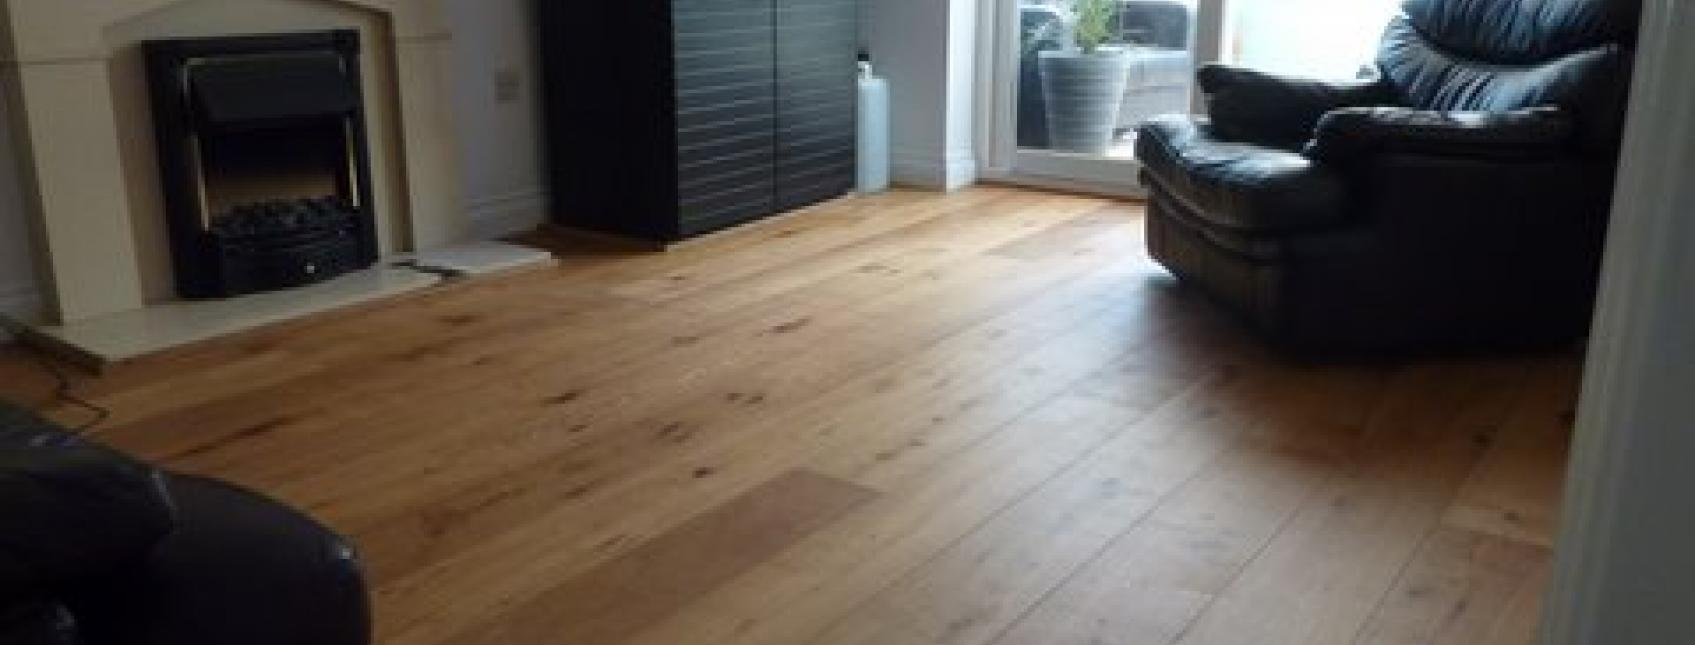 Llounge laid with engineered wood floorboards